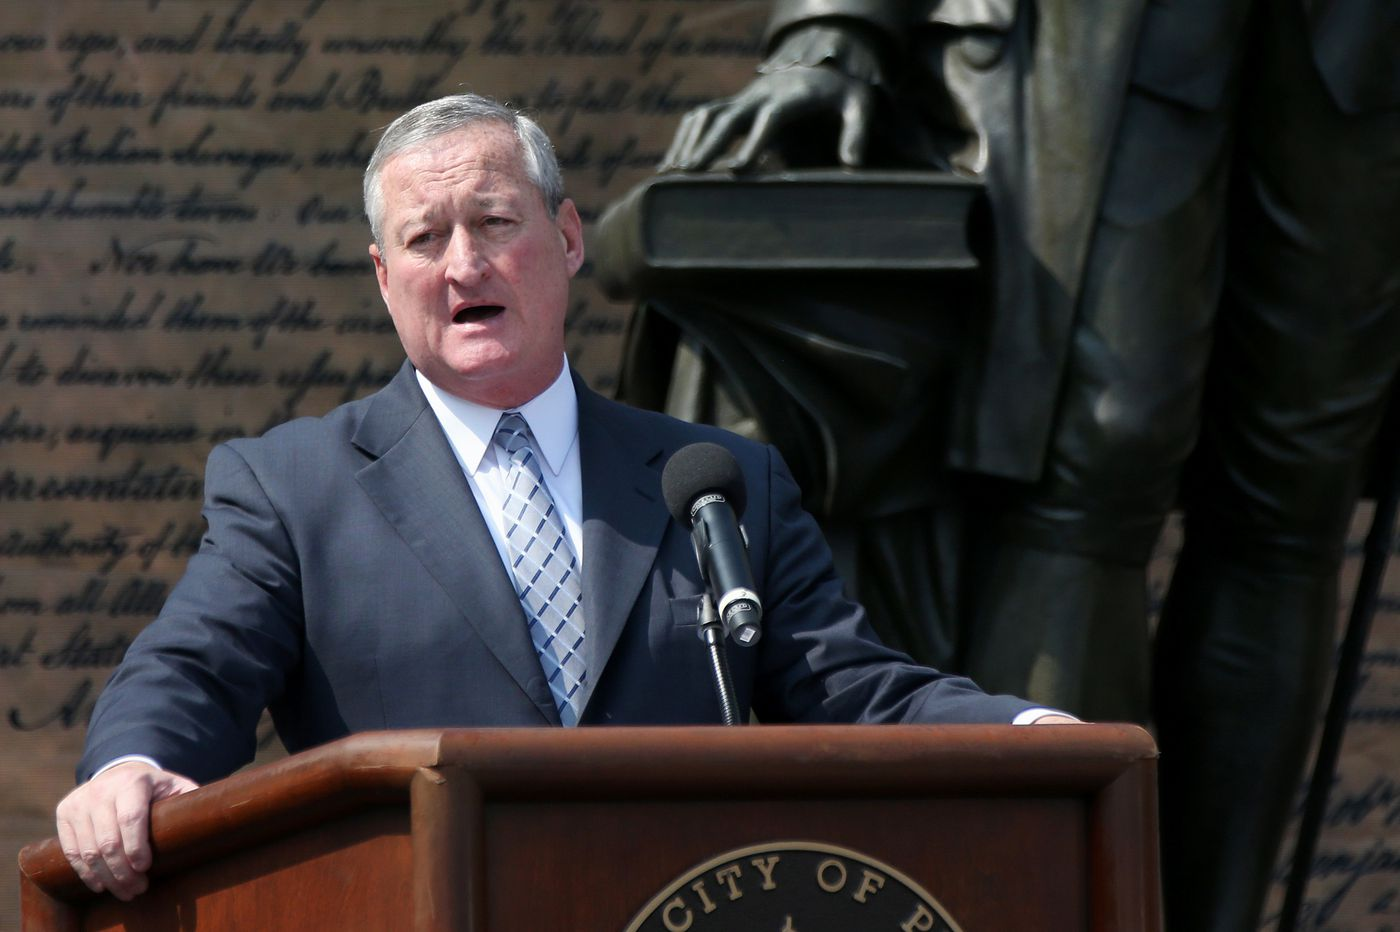 Mayor Kenney should apologize for linking black doll hanging to Trump's rhetoric, Pennsylvania GOP says